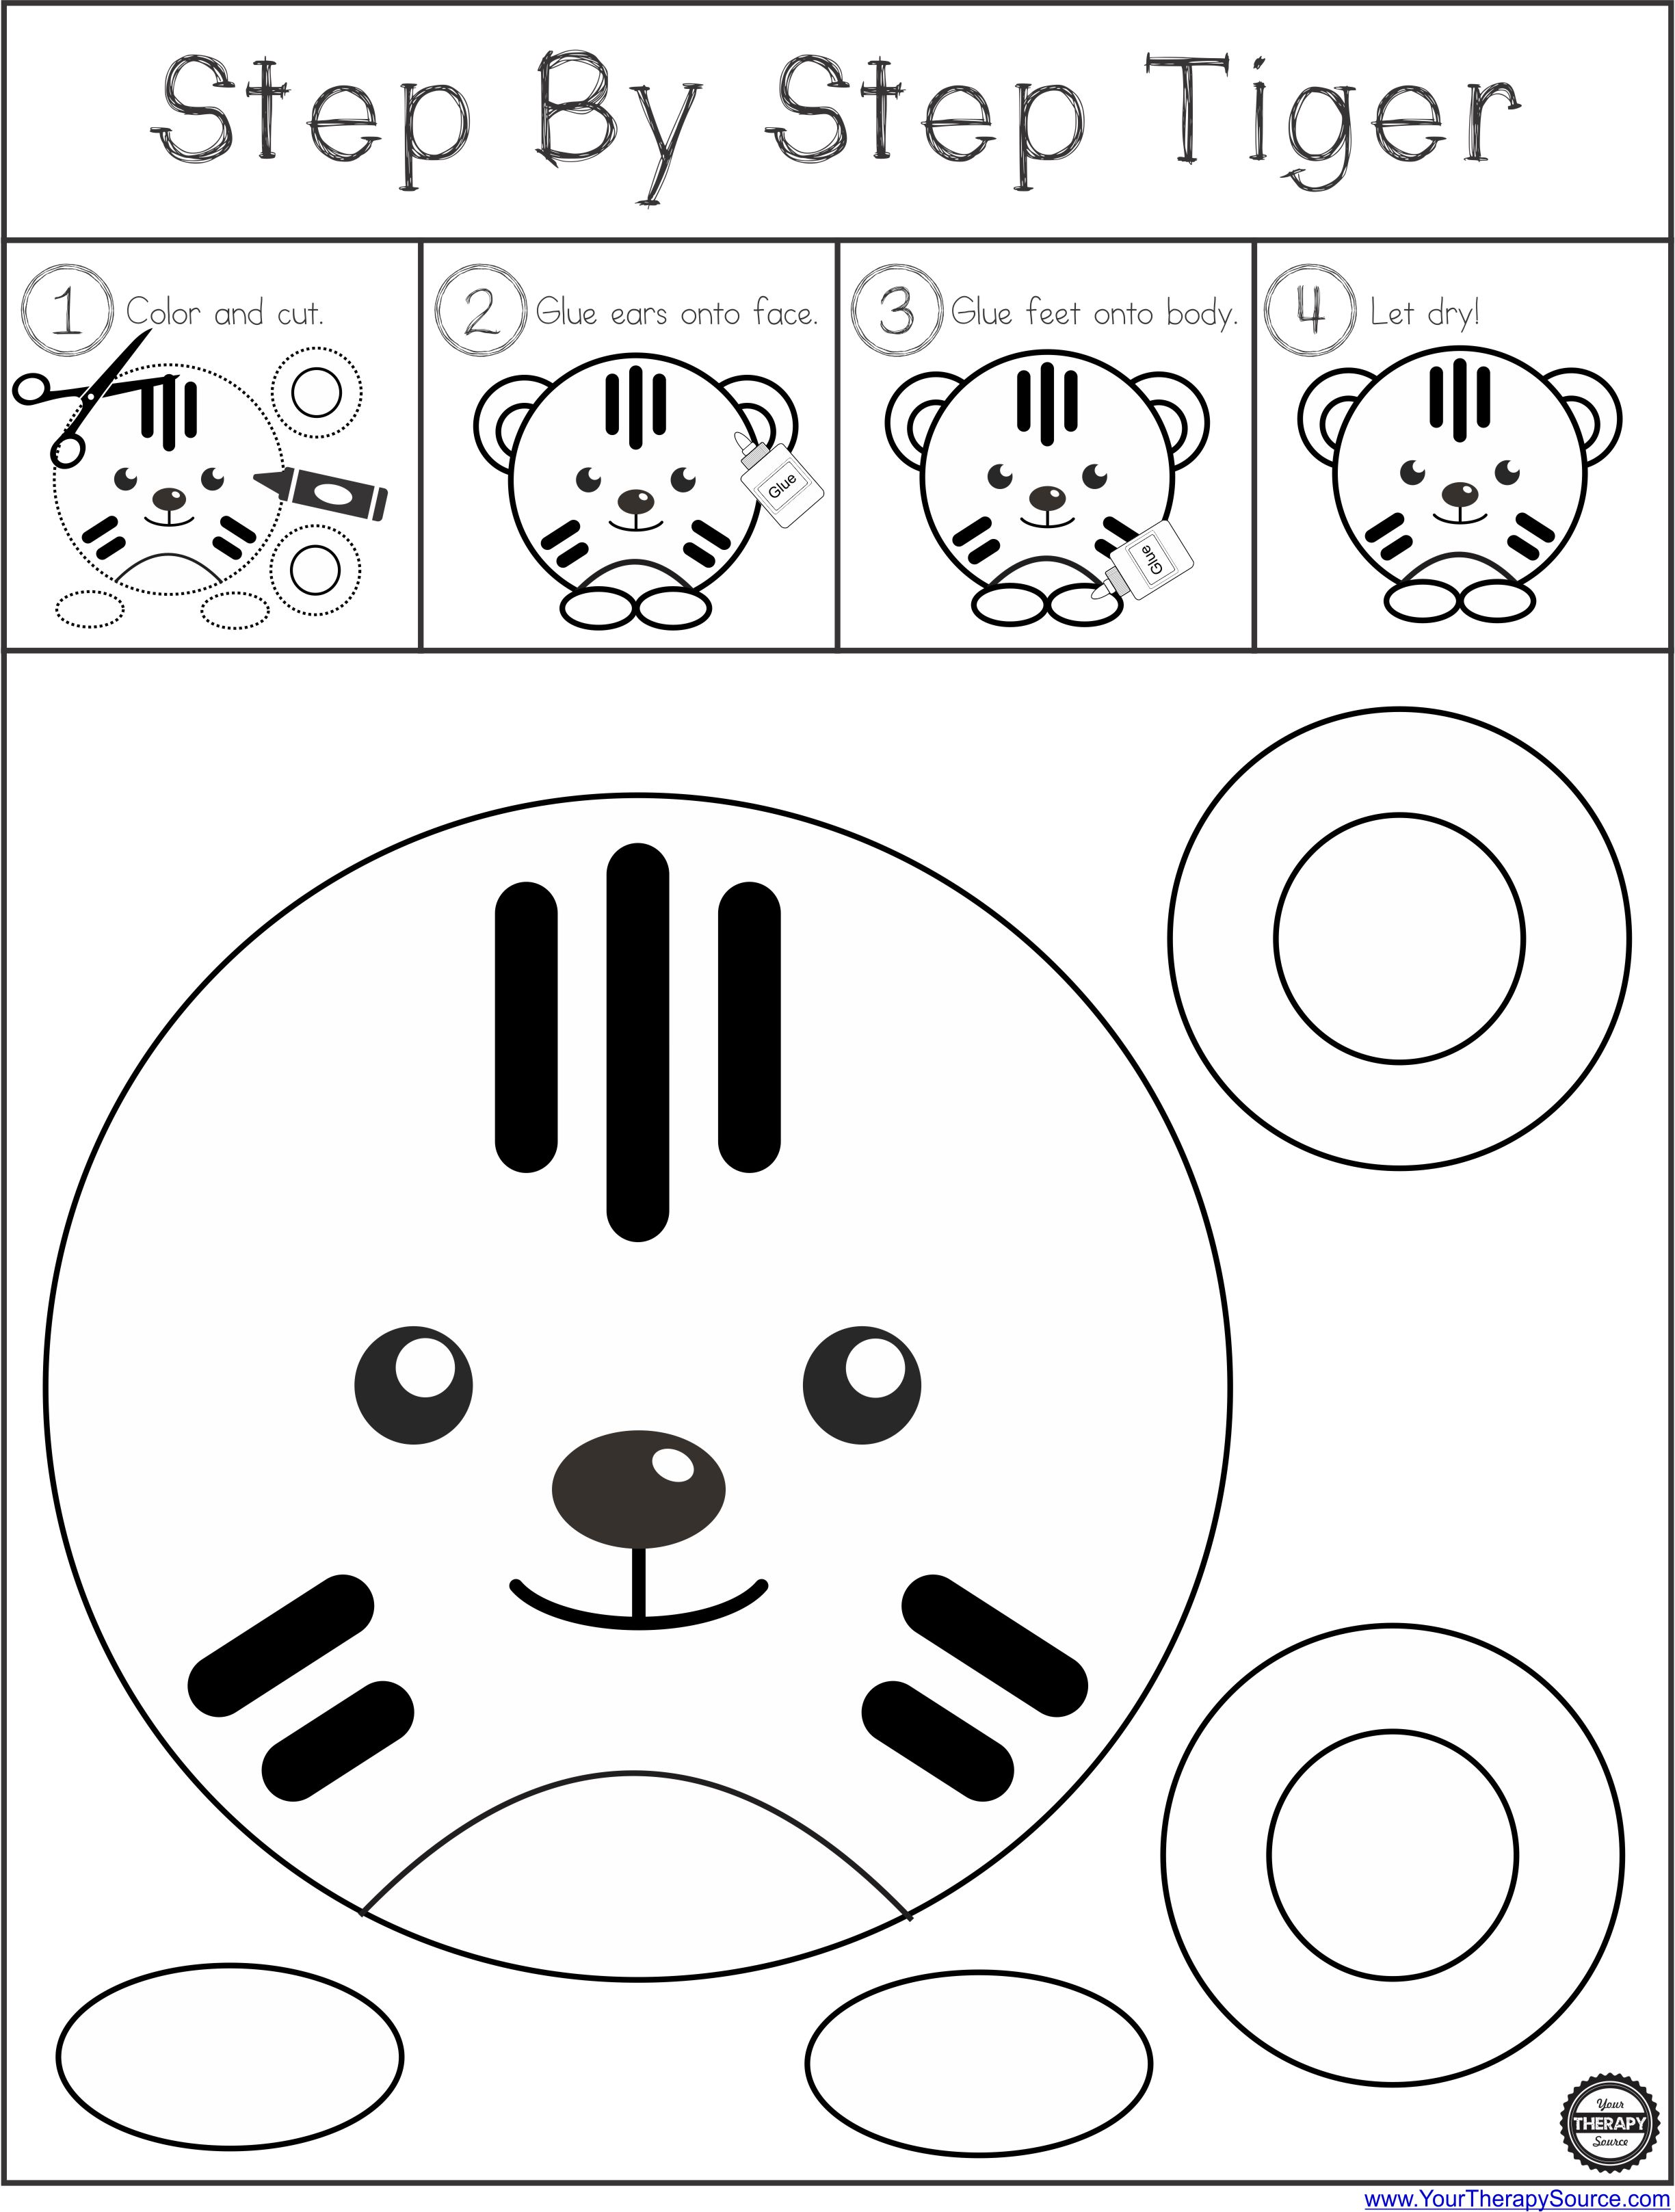 The coloring book project 2